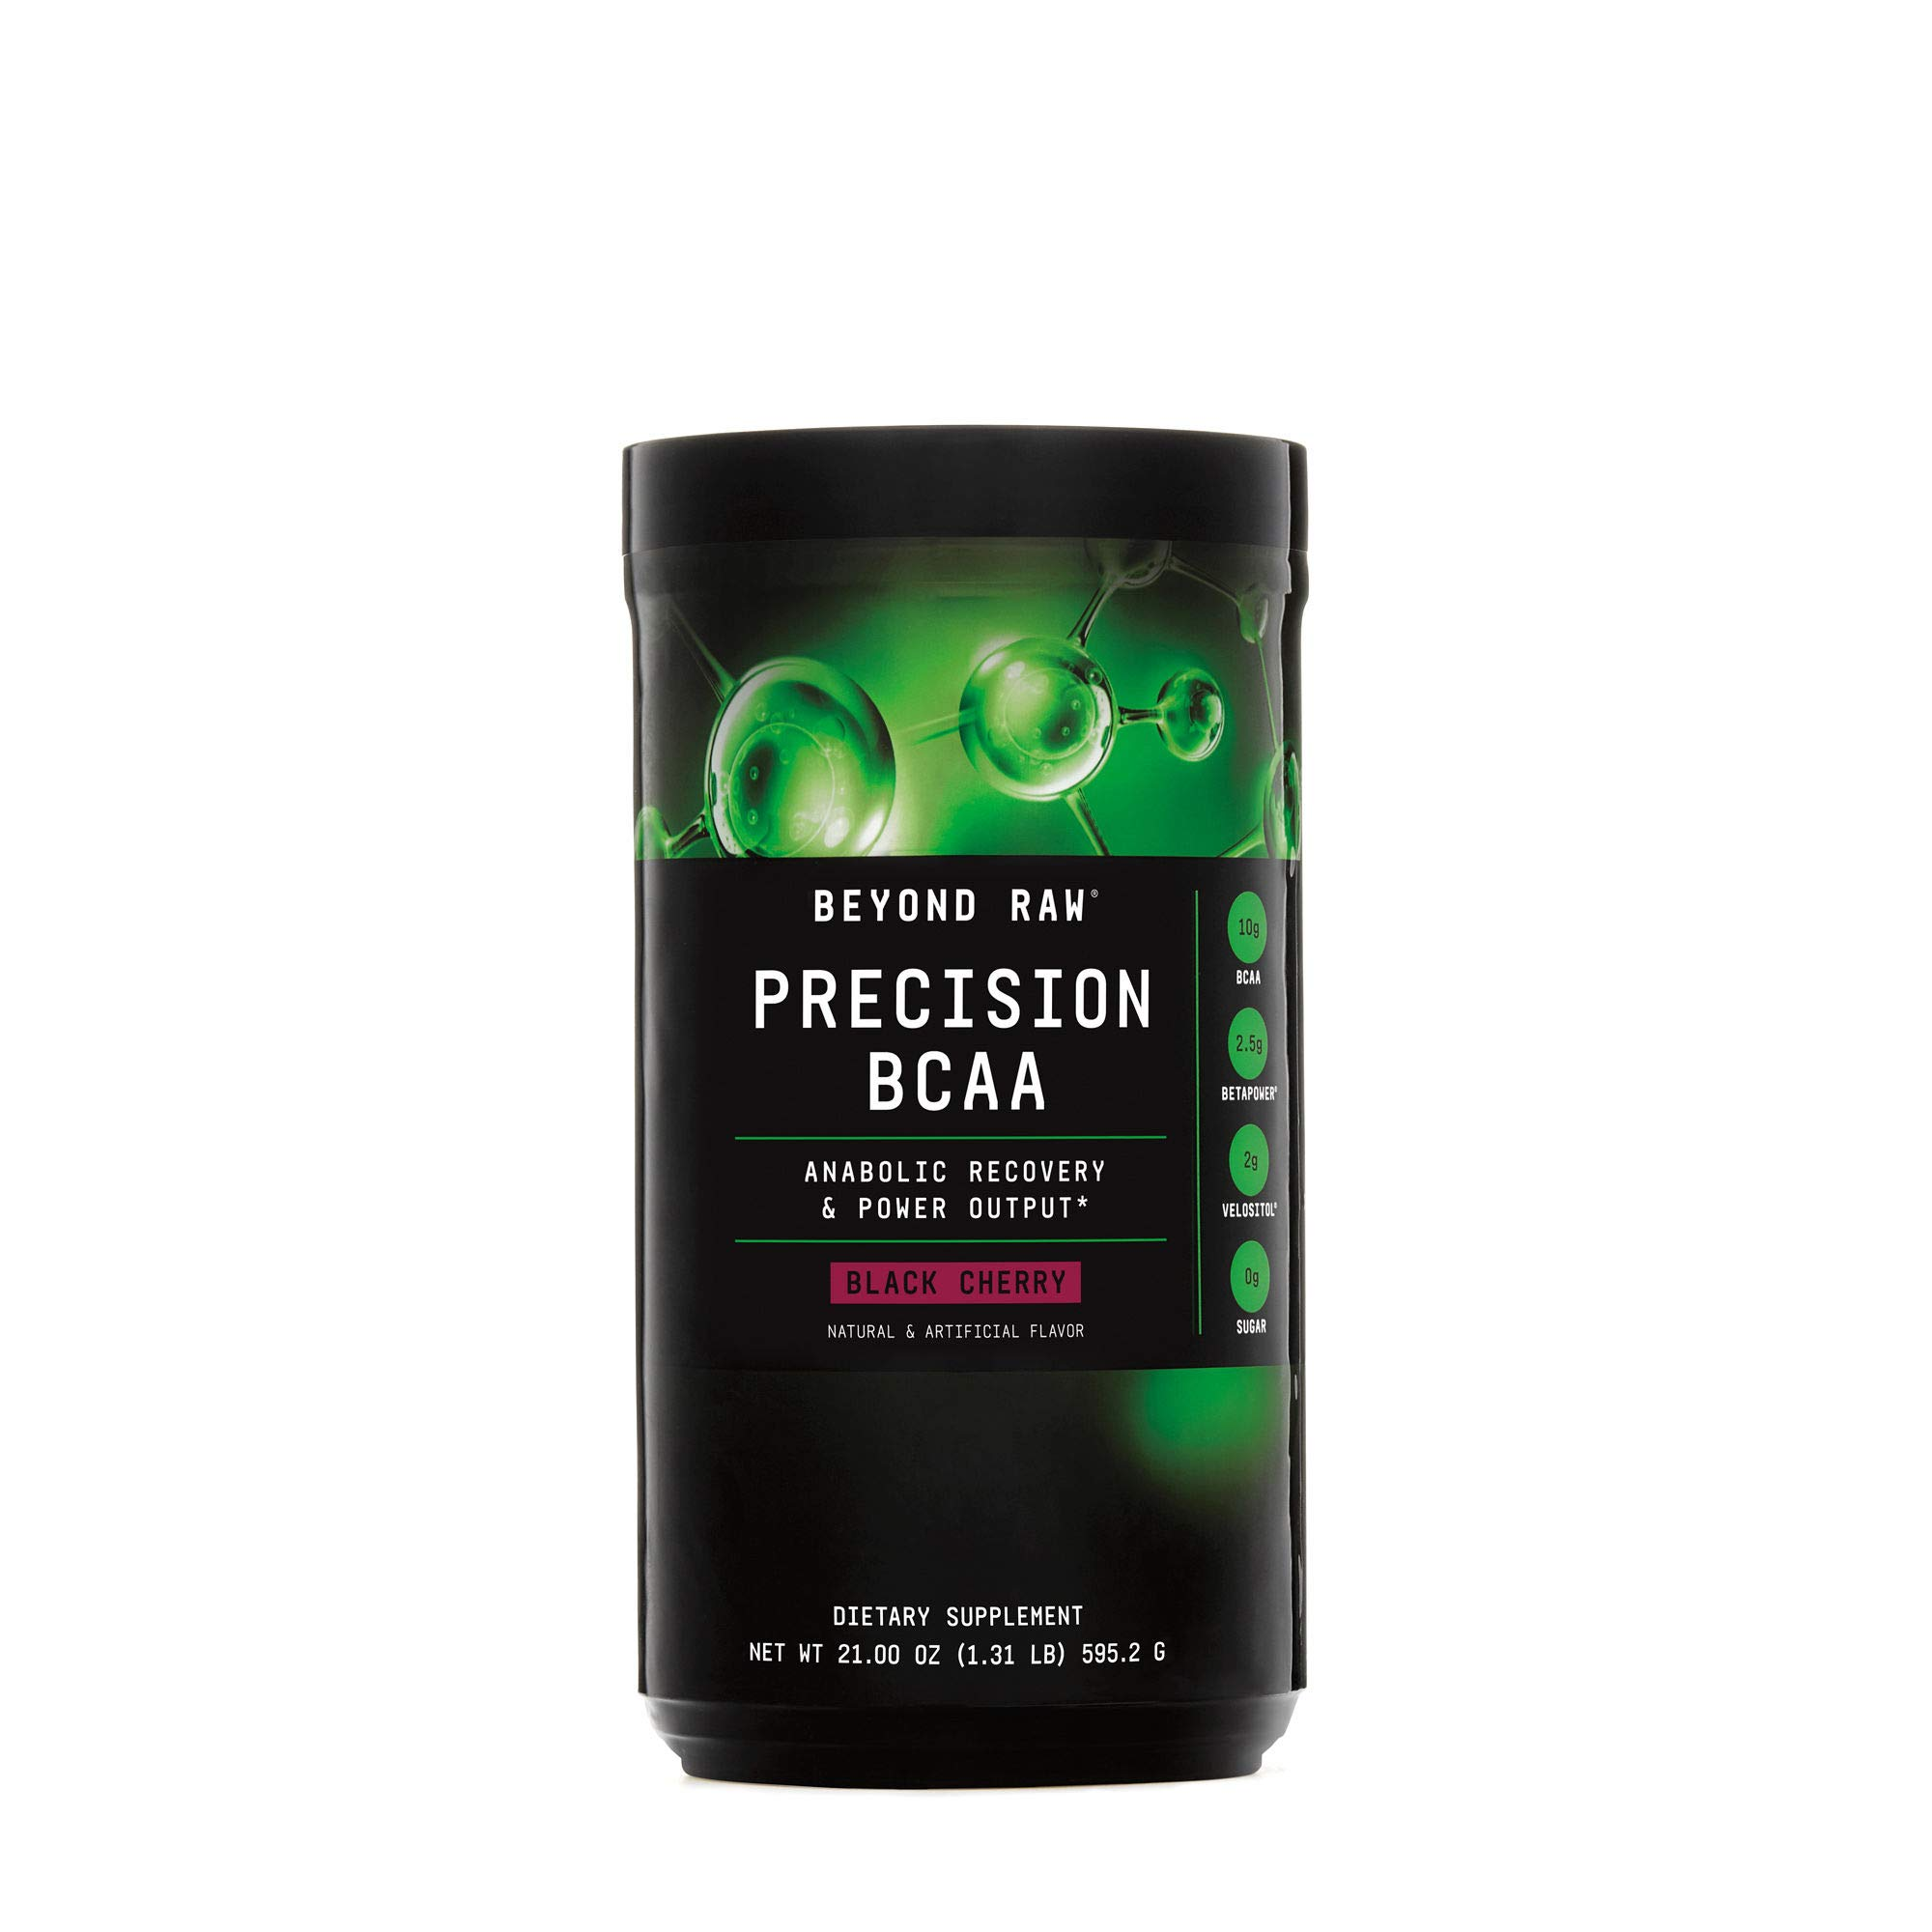 Beyond Raw Precision BCAA, Black Cherry, 30 Servings, Provides Energy and Supports Muscle Repair